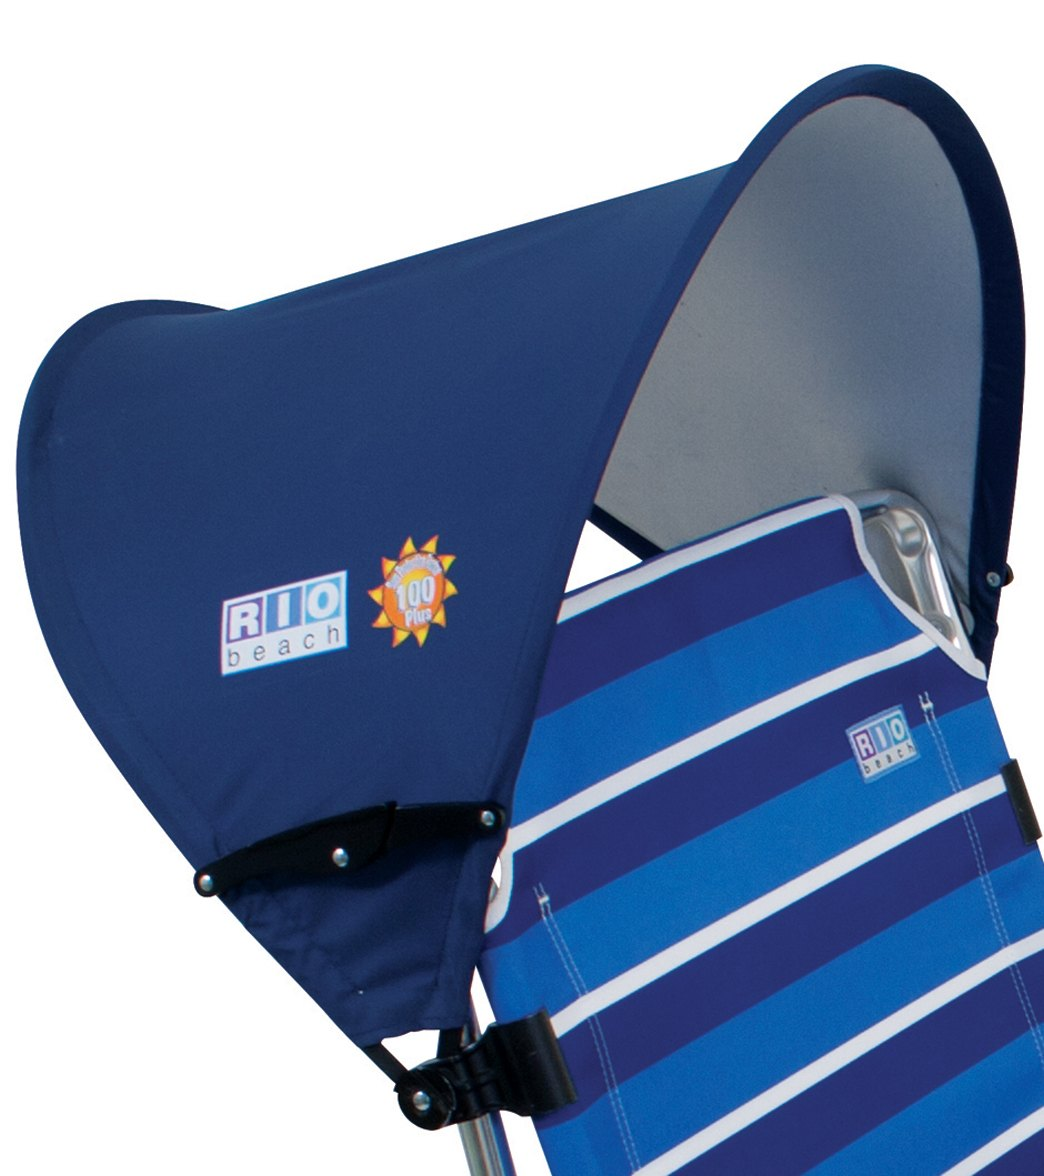 sc 1 st  SwimOutlet.com & Rio Brands My Canopy for Beach Chairs at SwimOutlet.com